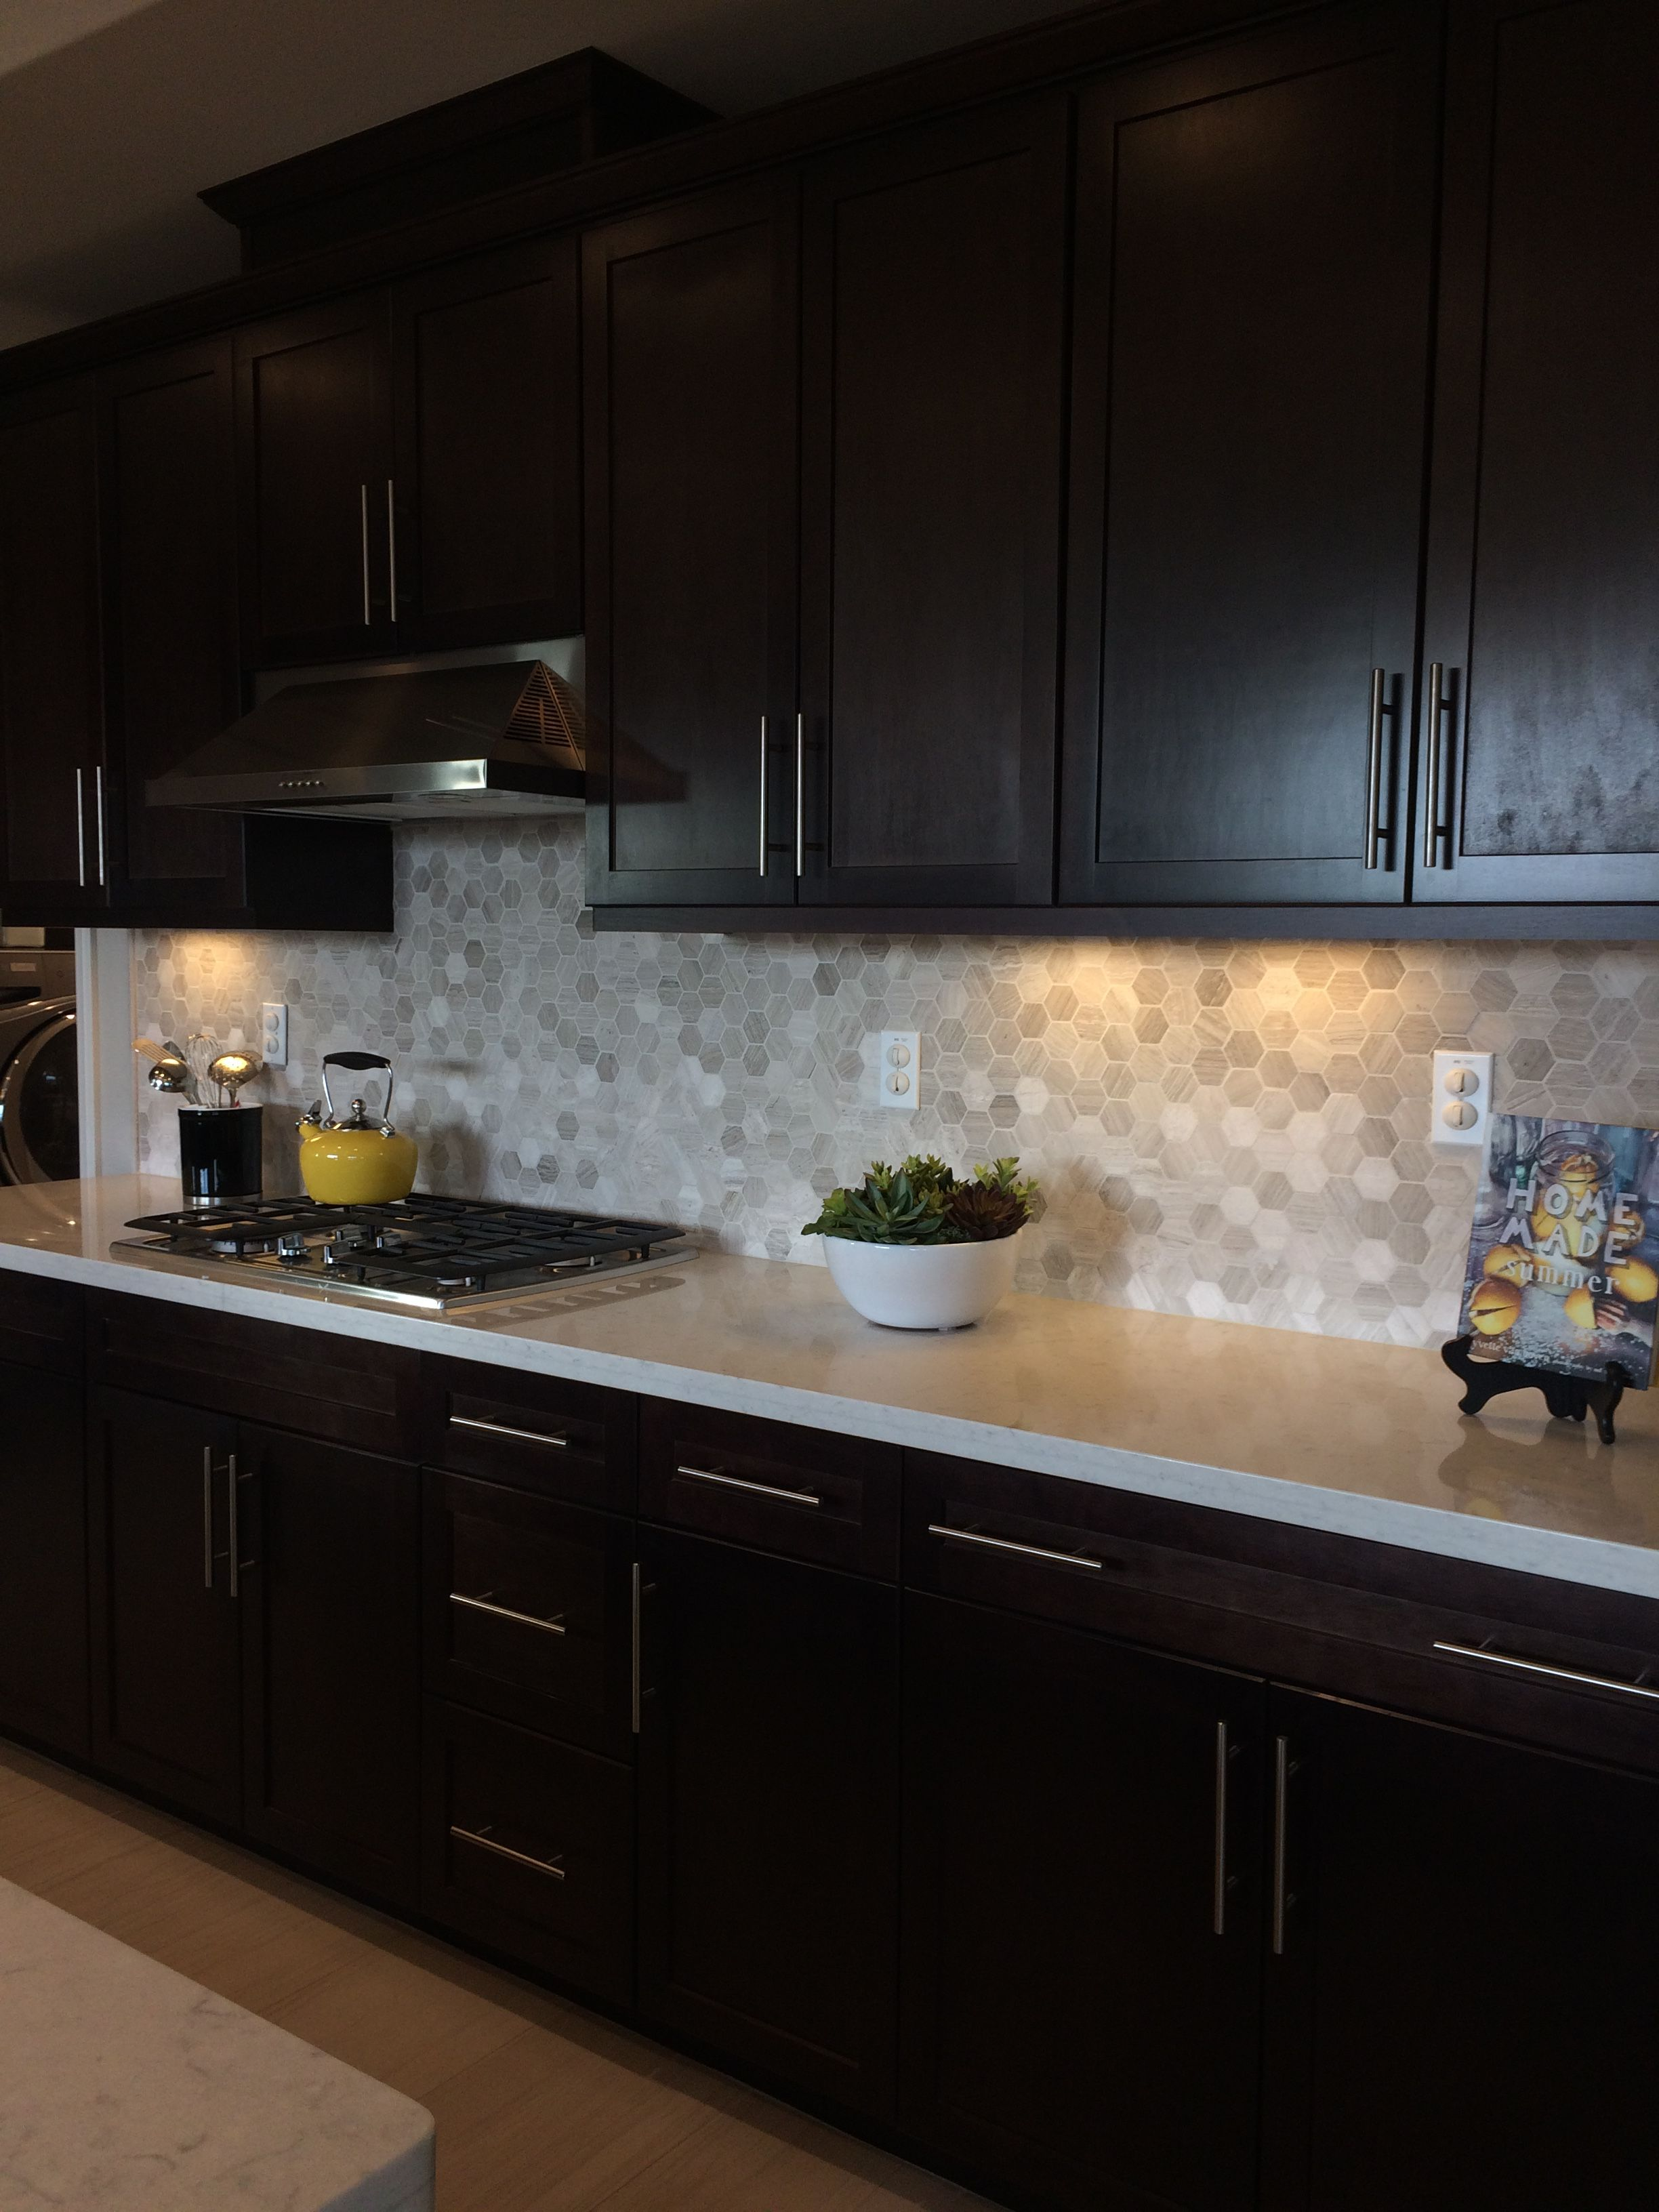 Dark Brown Kitchen Cabinets Light Quartz Countertop Dark Brown Kitchen Cabinets Brown Kitchen Cabinets Kitchen Cabinets And Backsplash